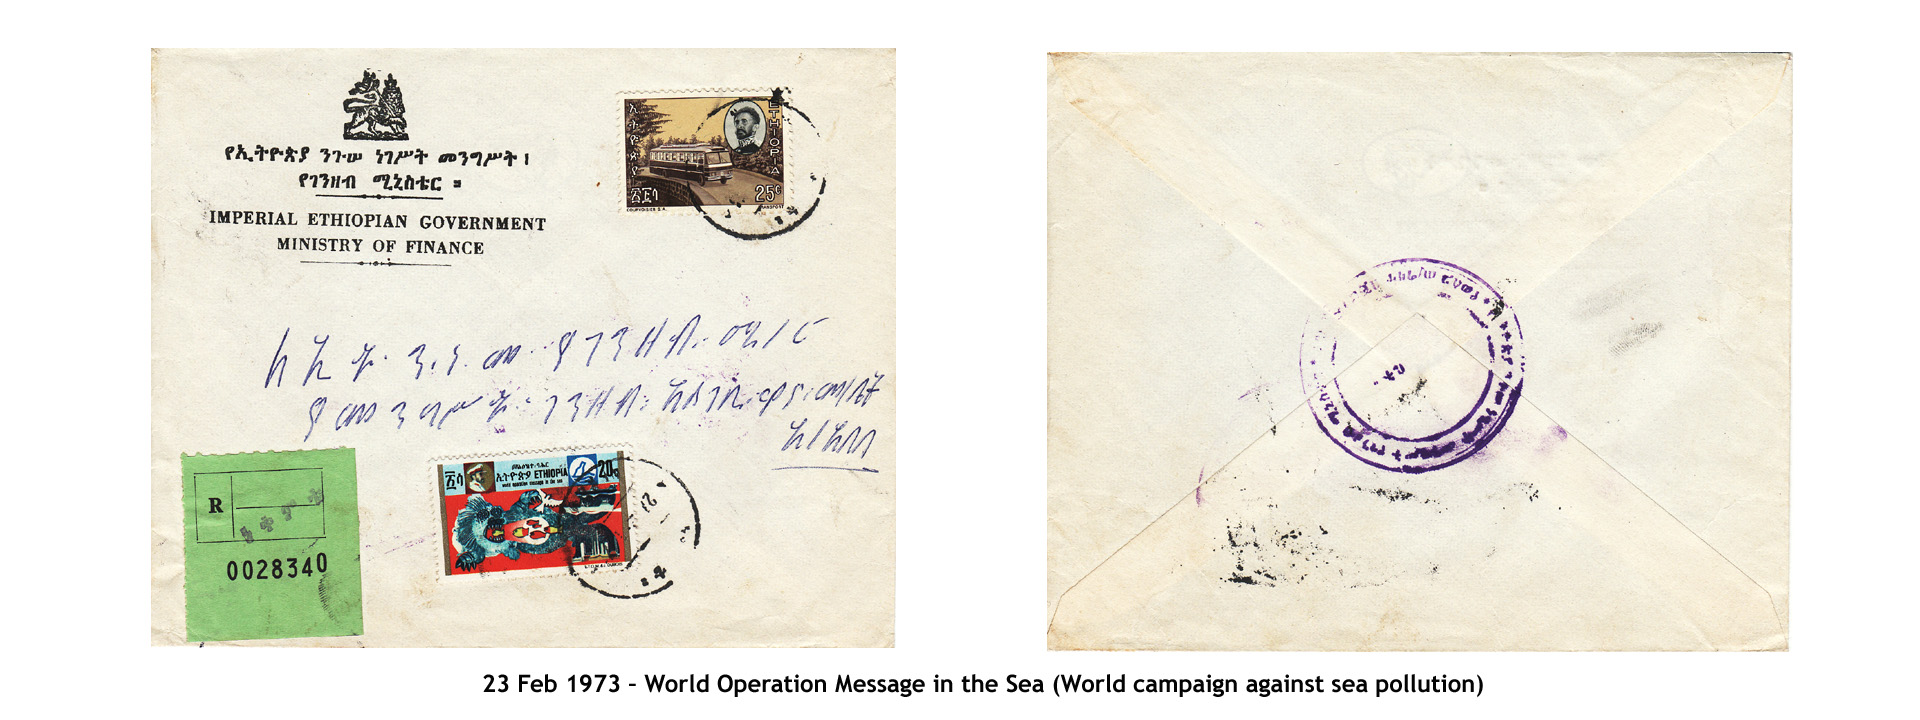 19730223 - World Operation Message in the Sea (World campaign against sea pollution)